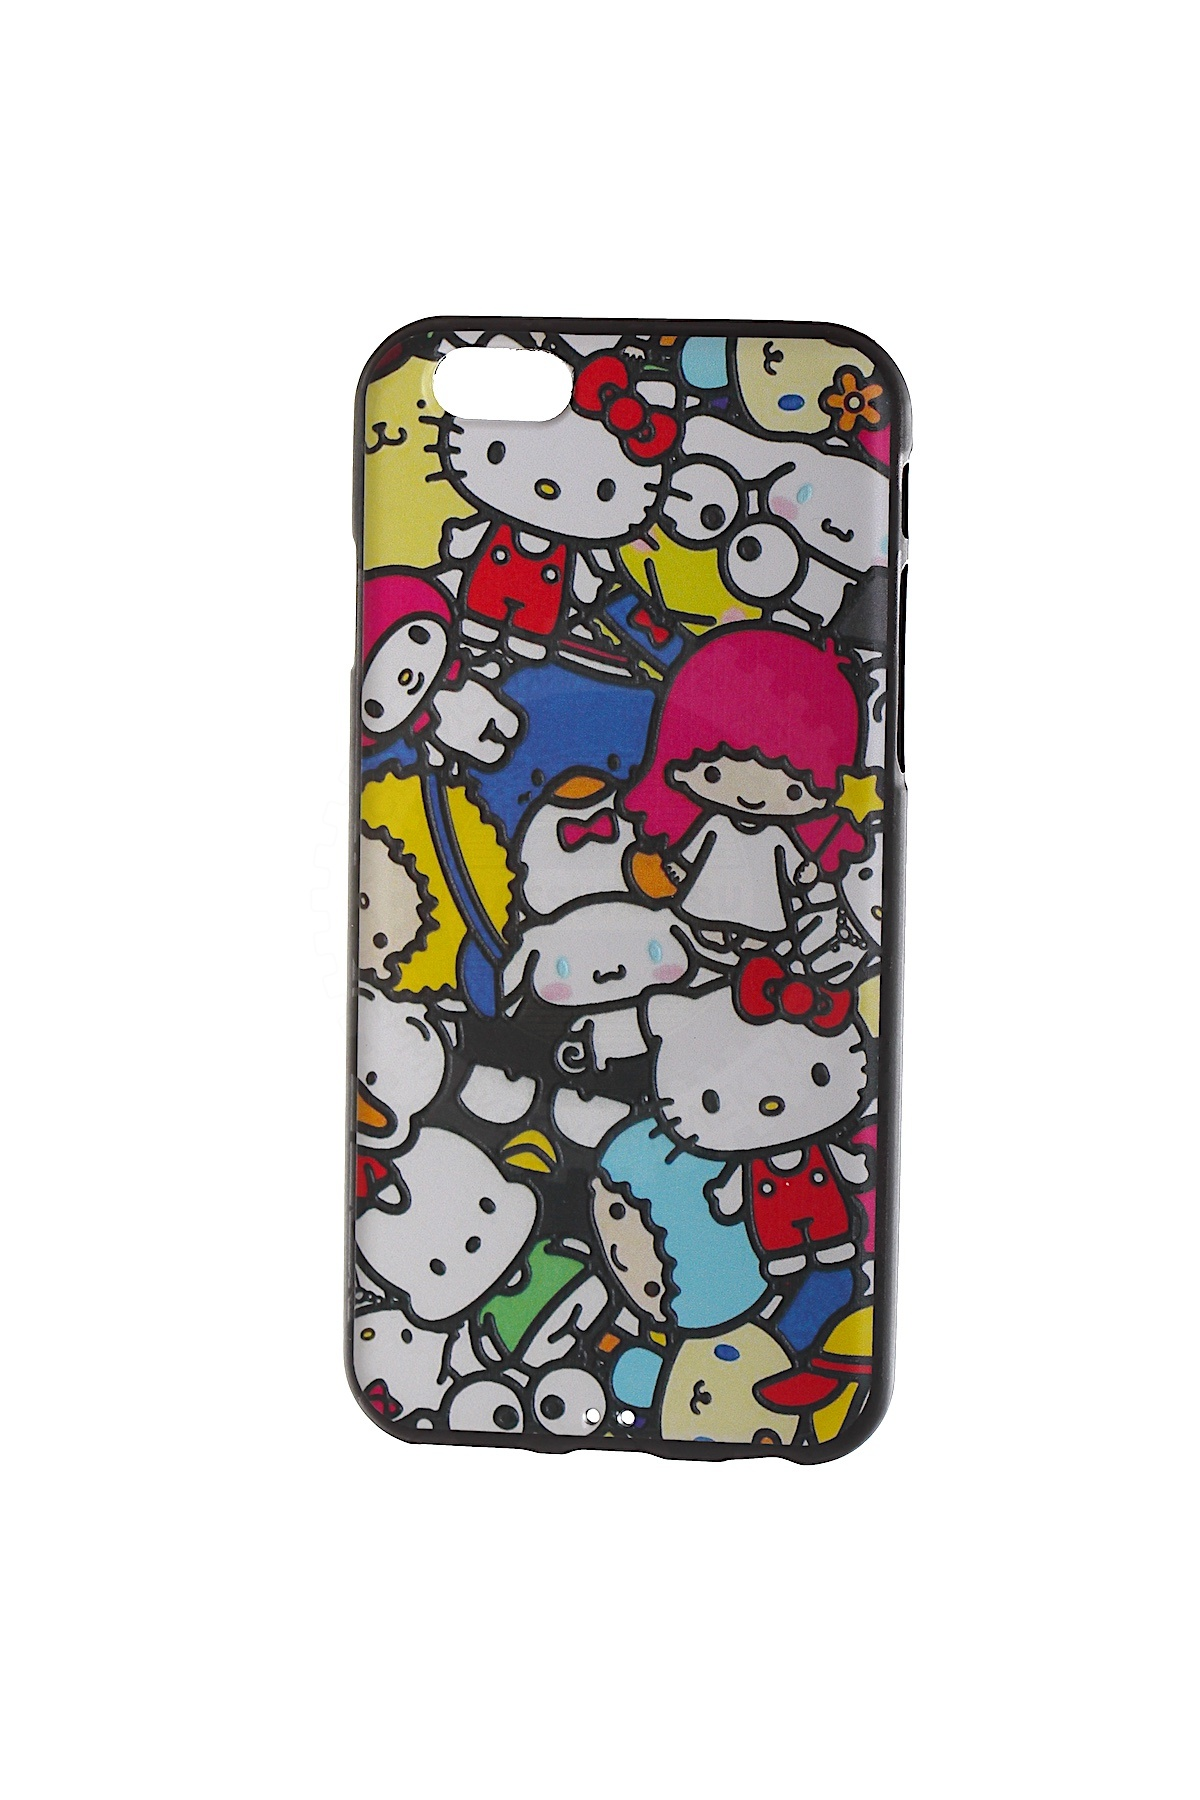 Купить чехол hello kitty characters для iphone 6/6s